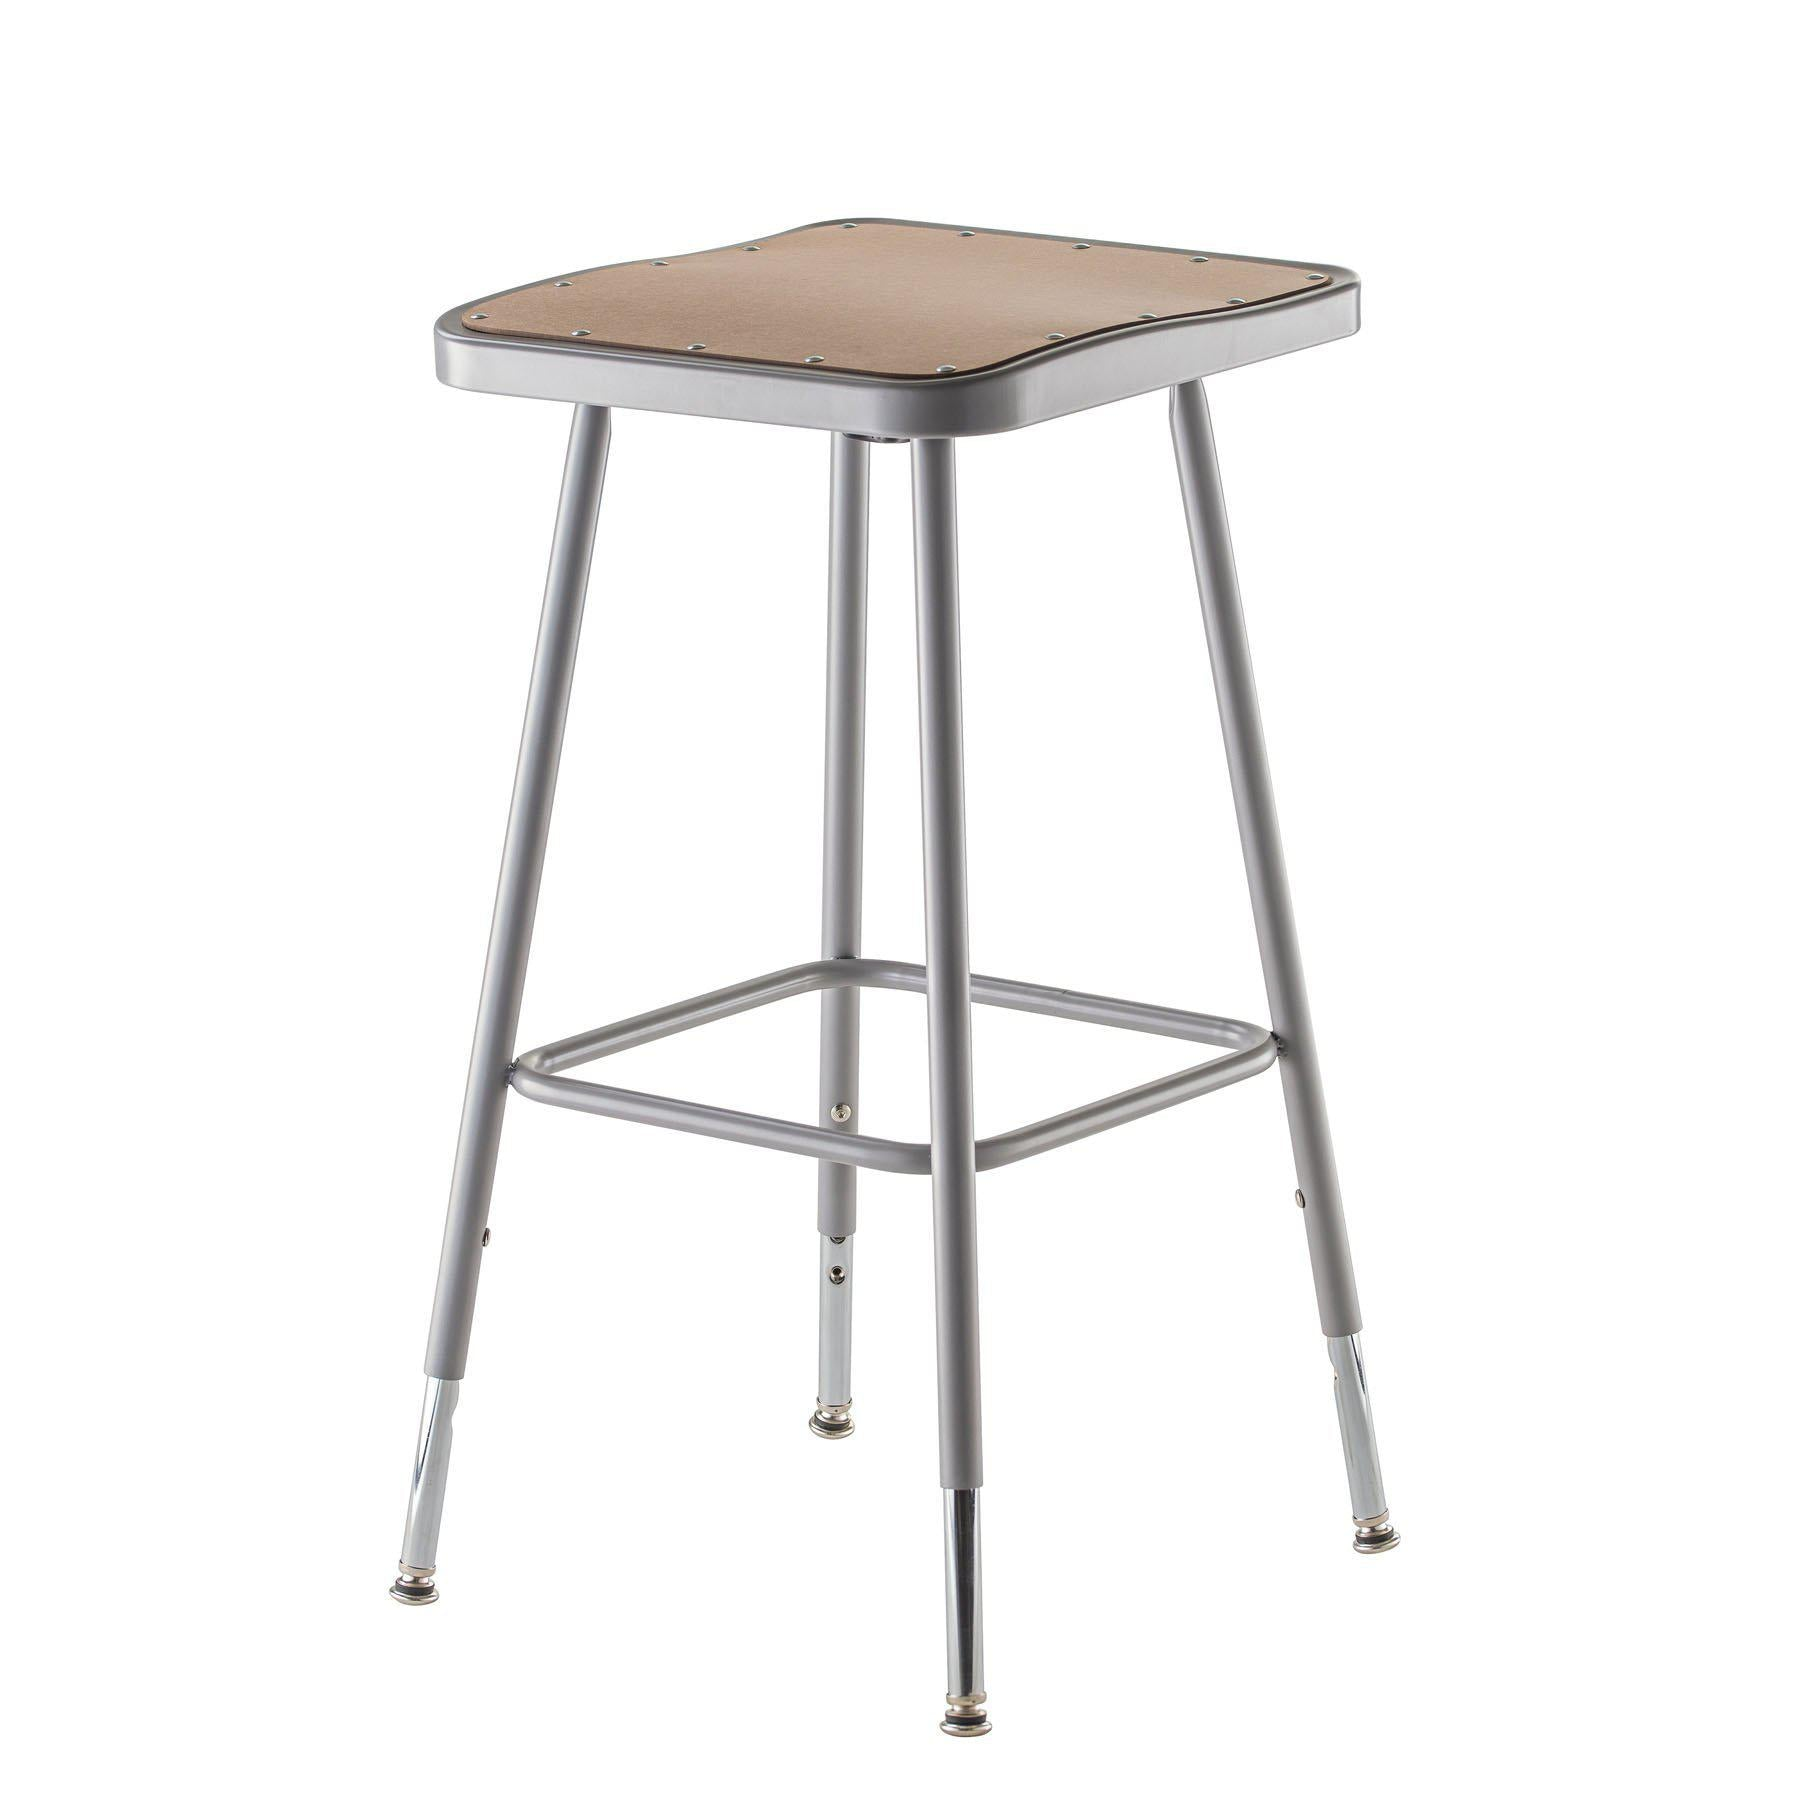 "Height Adjustable Heavy Duty Square Seat Steel Stool, Grey-Stools-25"" - 33""-"